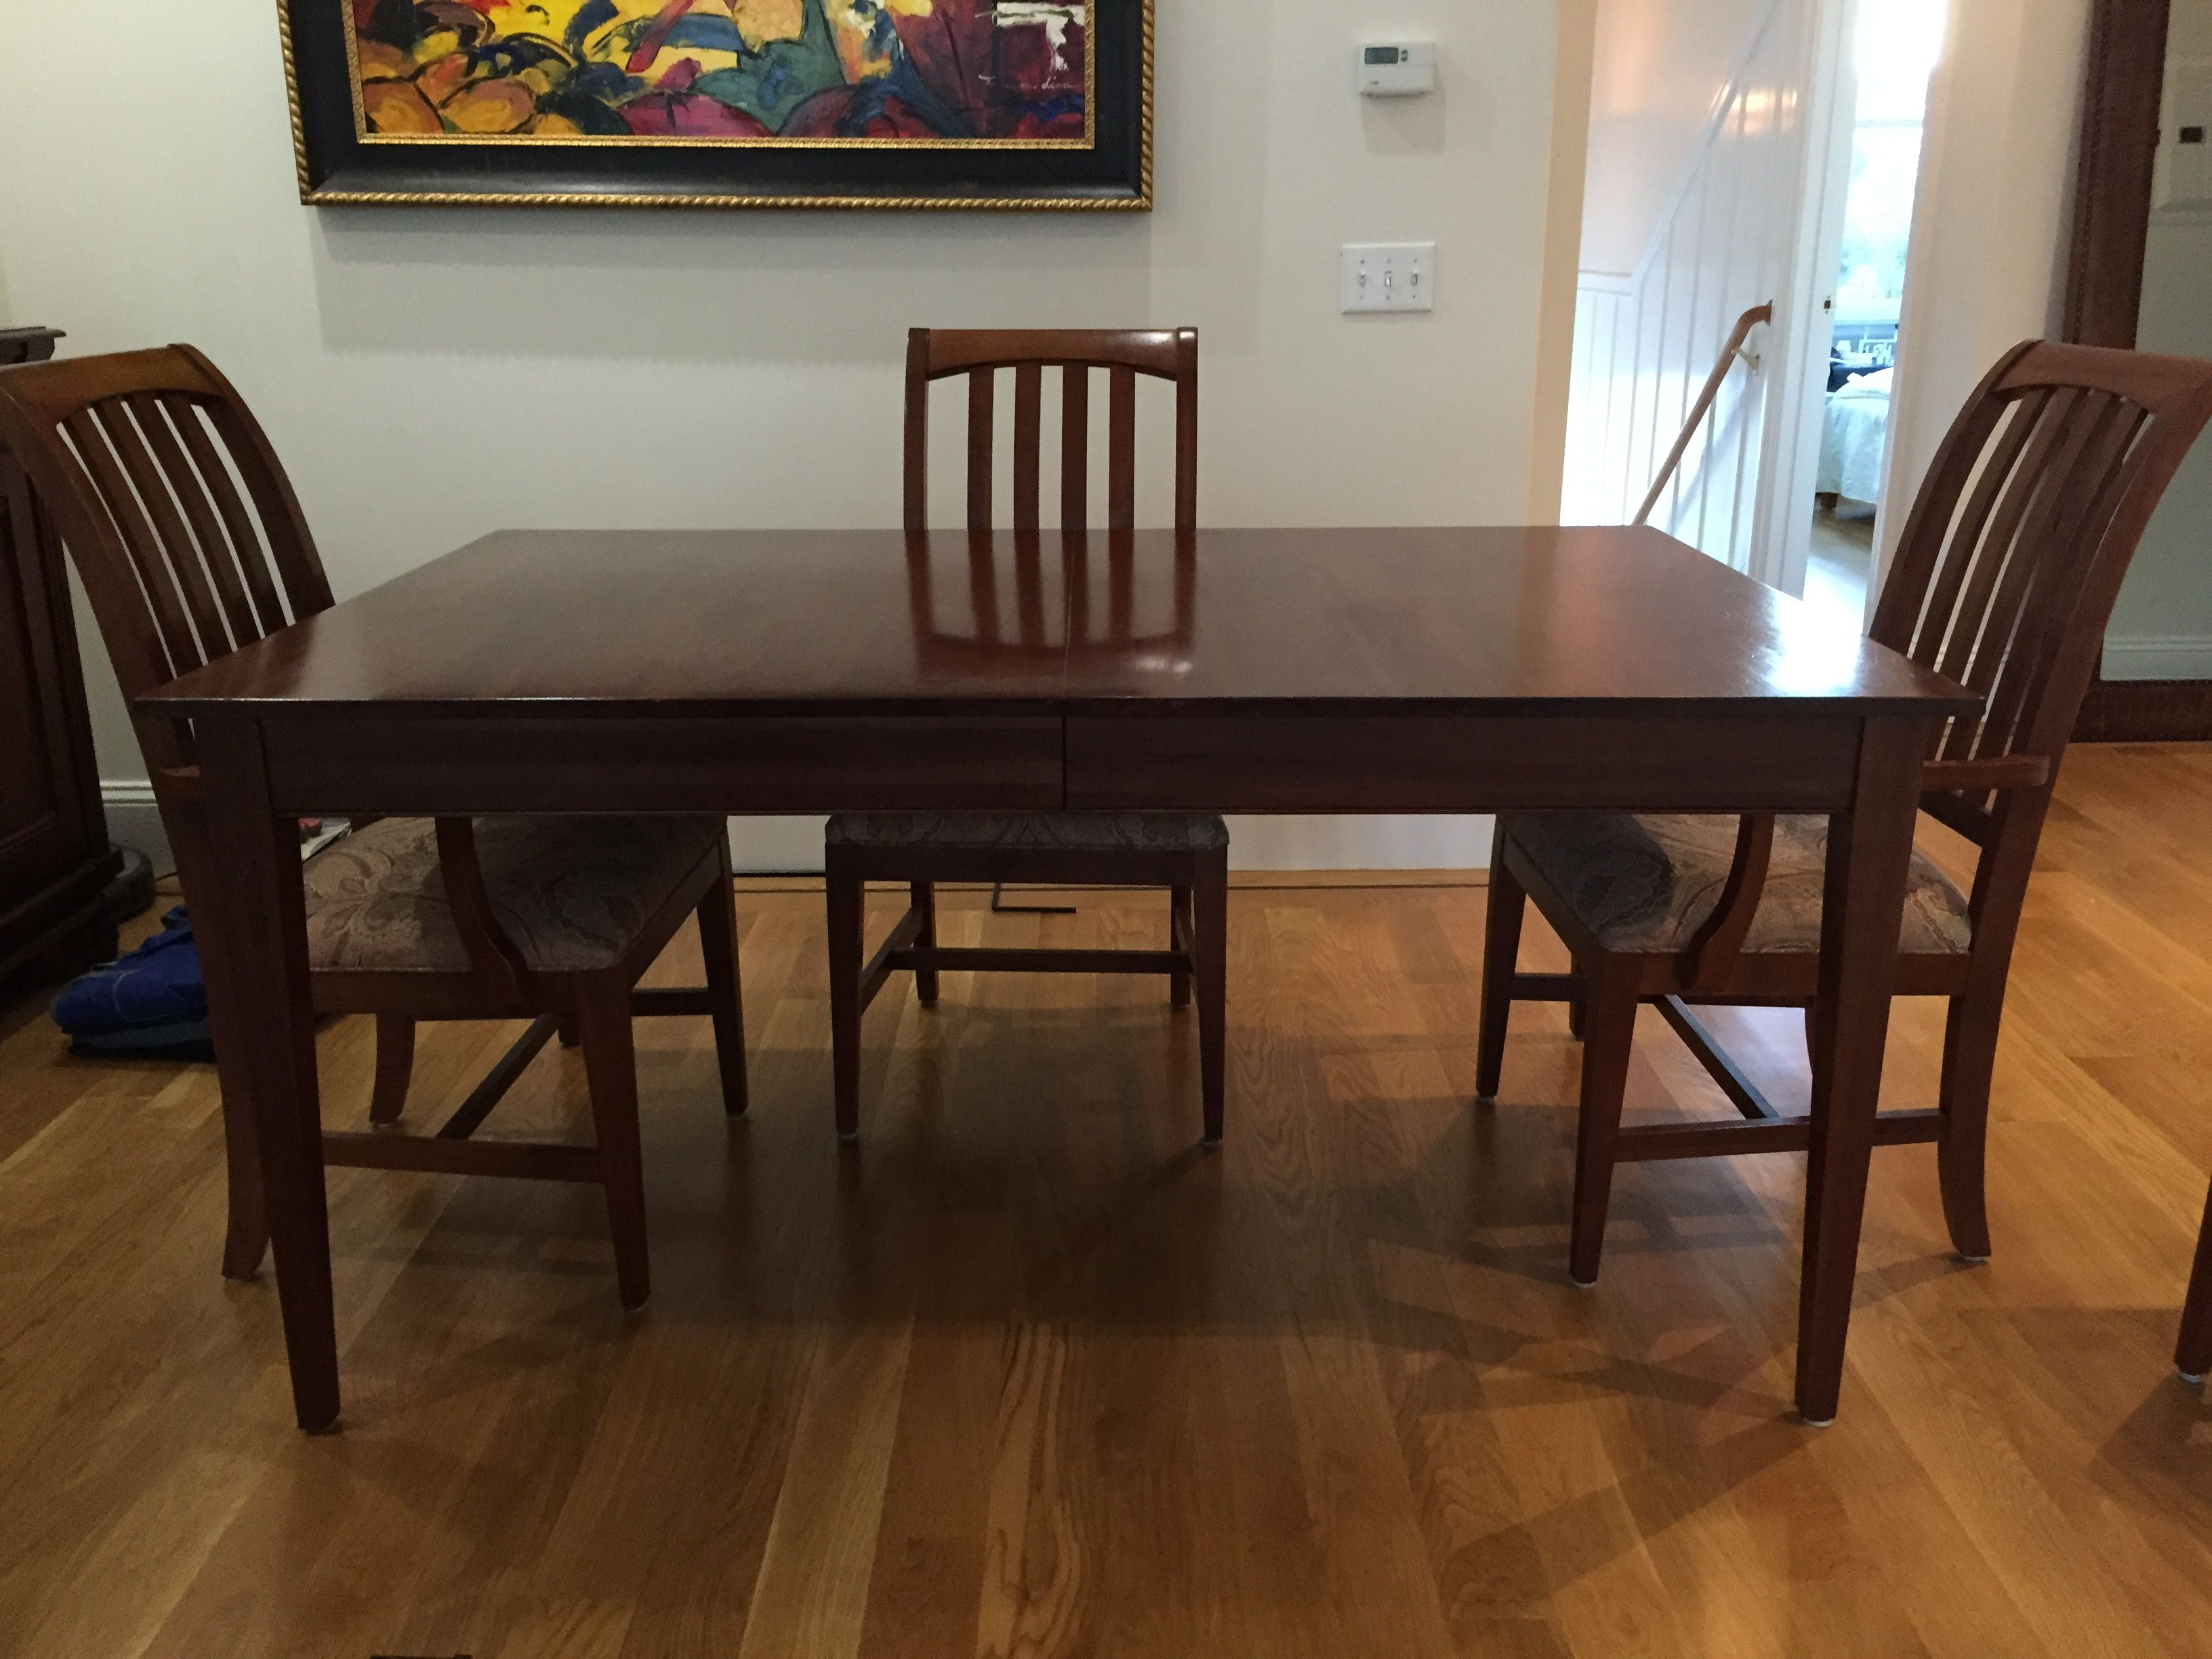 Ethan Allen Dining Room Set Table amp 6 Chairs Chairish : 89d0758b caa9 49bf a4e8 65e2c3234121aspectfitampwidth640ampheight640 from www.chairish.com size 640 x 640 jpeg 42kB